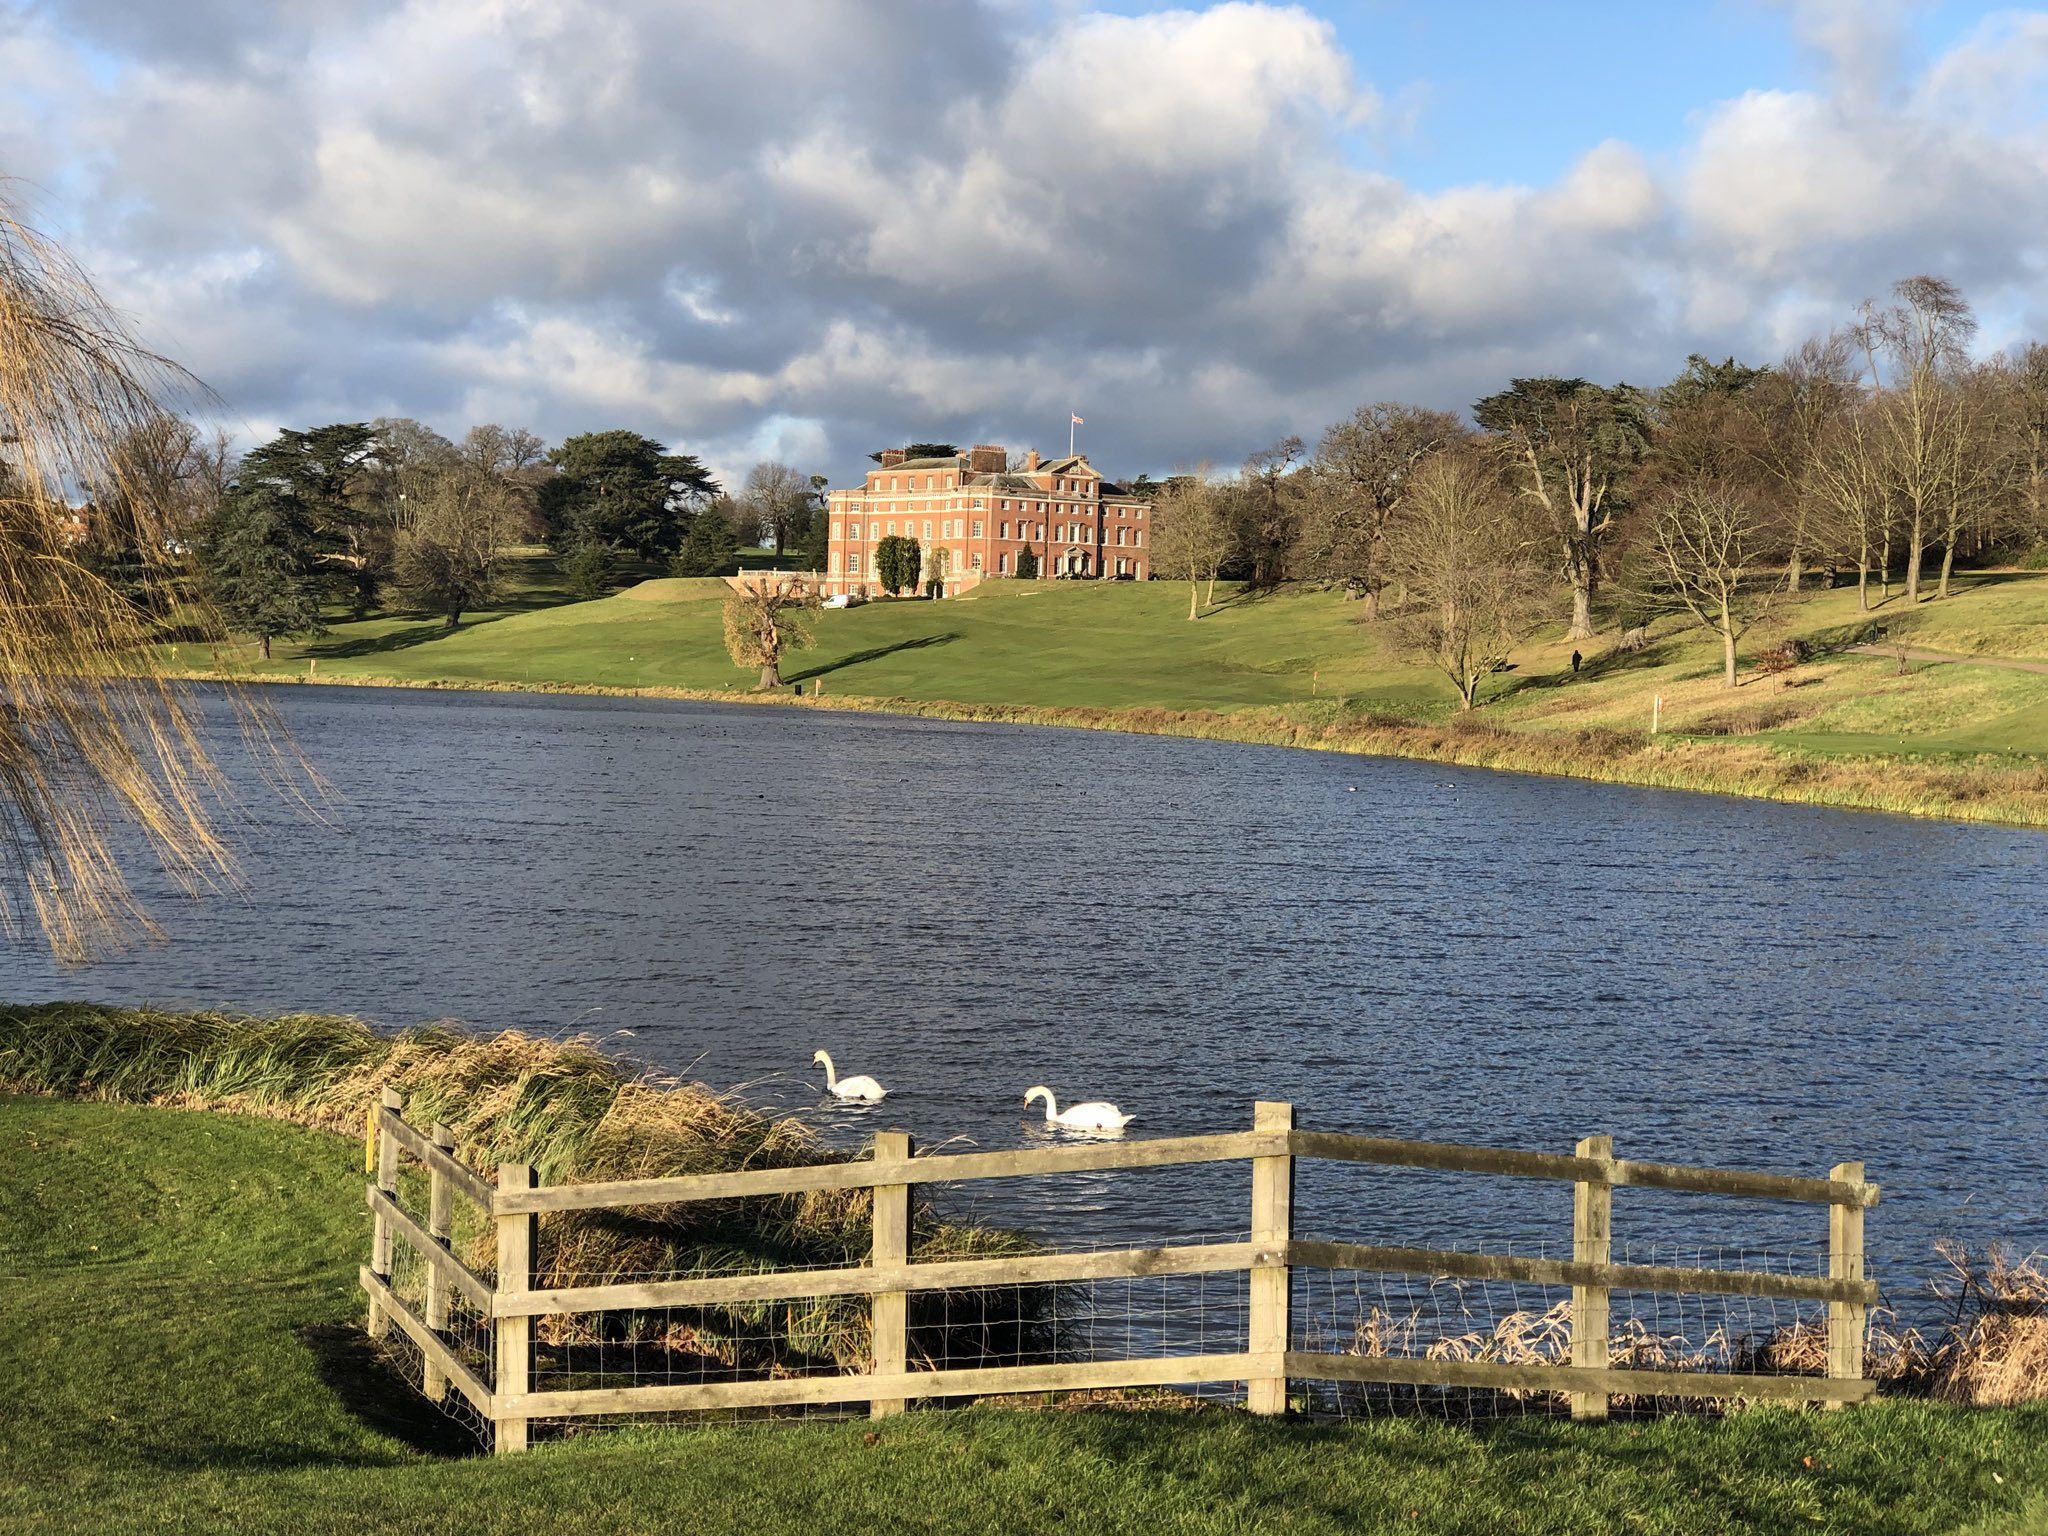 http://www.pexhurst.co.uk/wp-content/uploads/2017/12/Brocket-Hall-.jpg